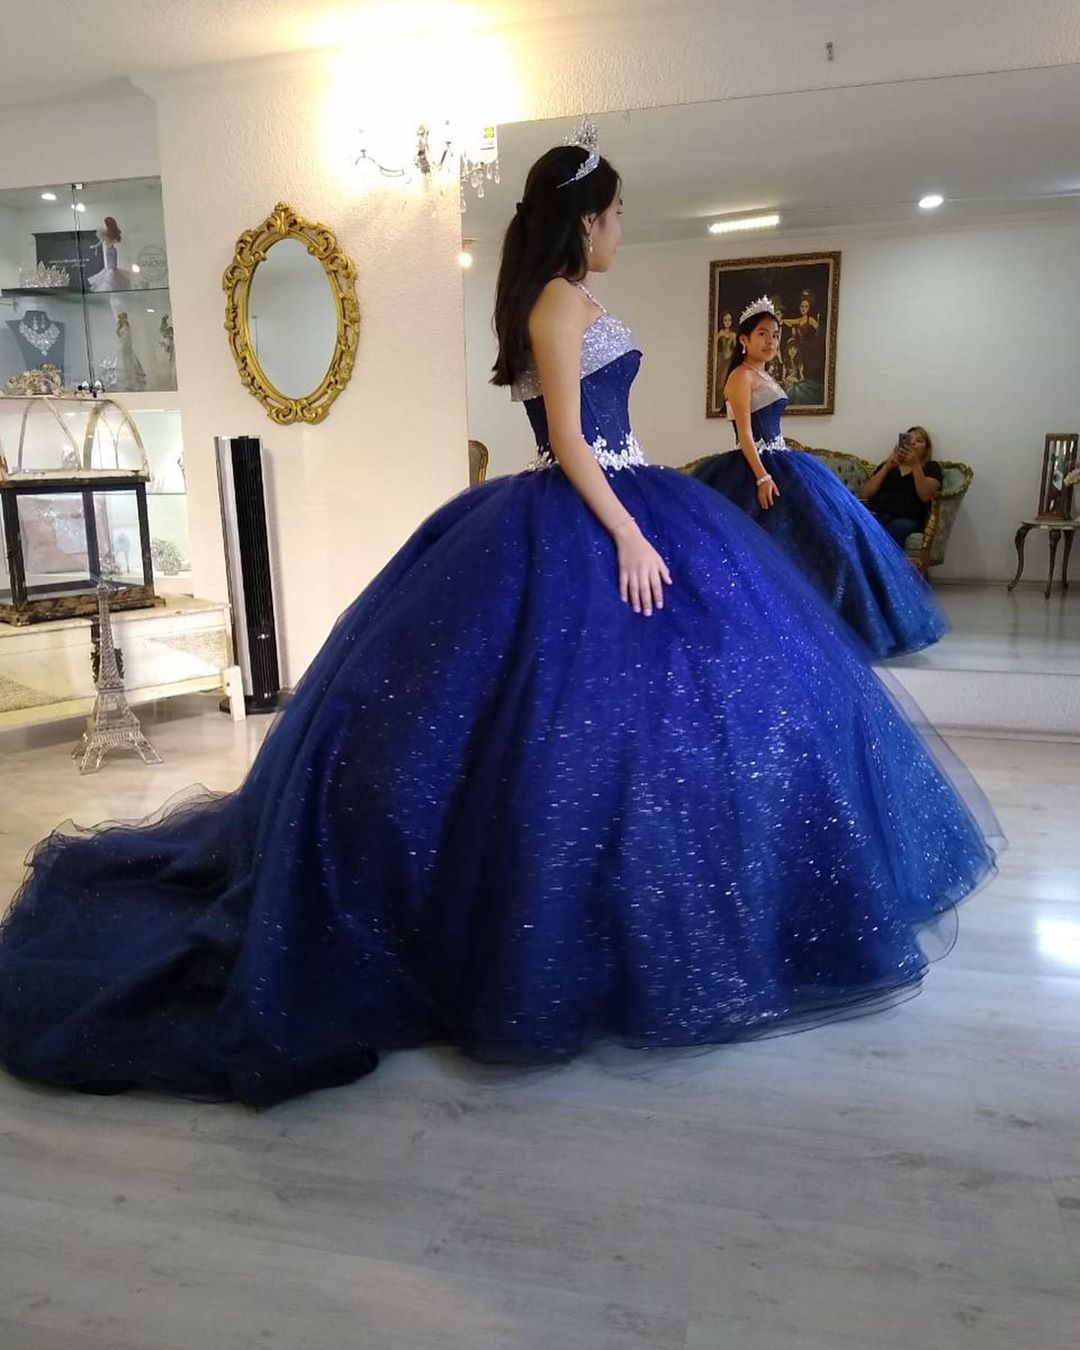 Glitter Sequins Royal Blue Ball Gown Quinceanera Dress Lace Appliques Puffy Girls 15 Years Birthday Dresses Sweet 16 Party Gowns